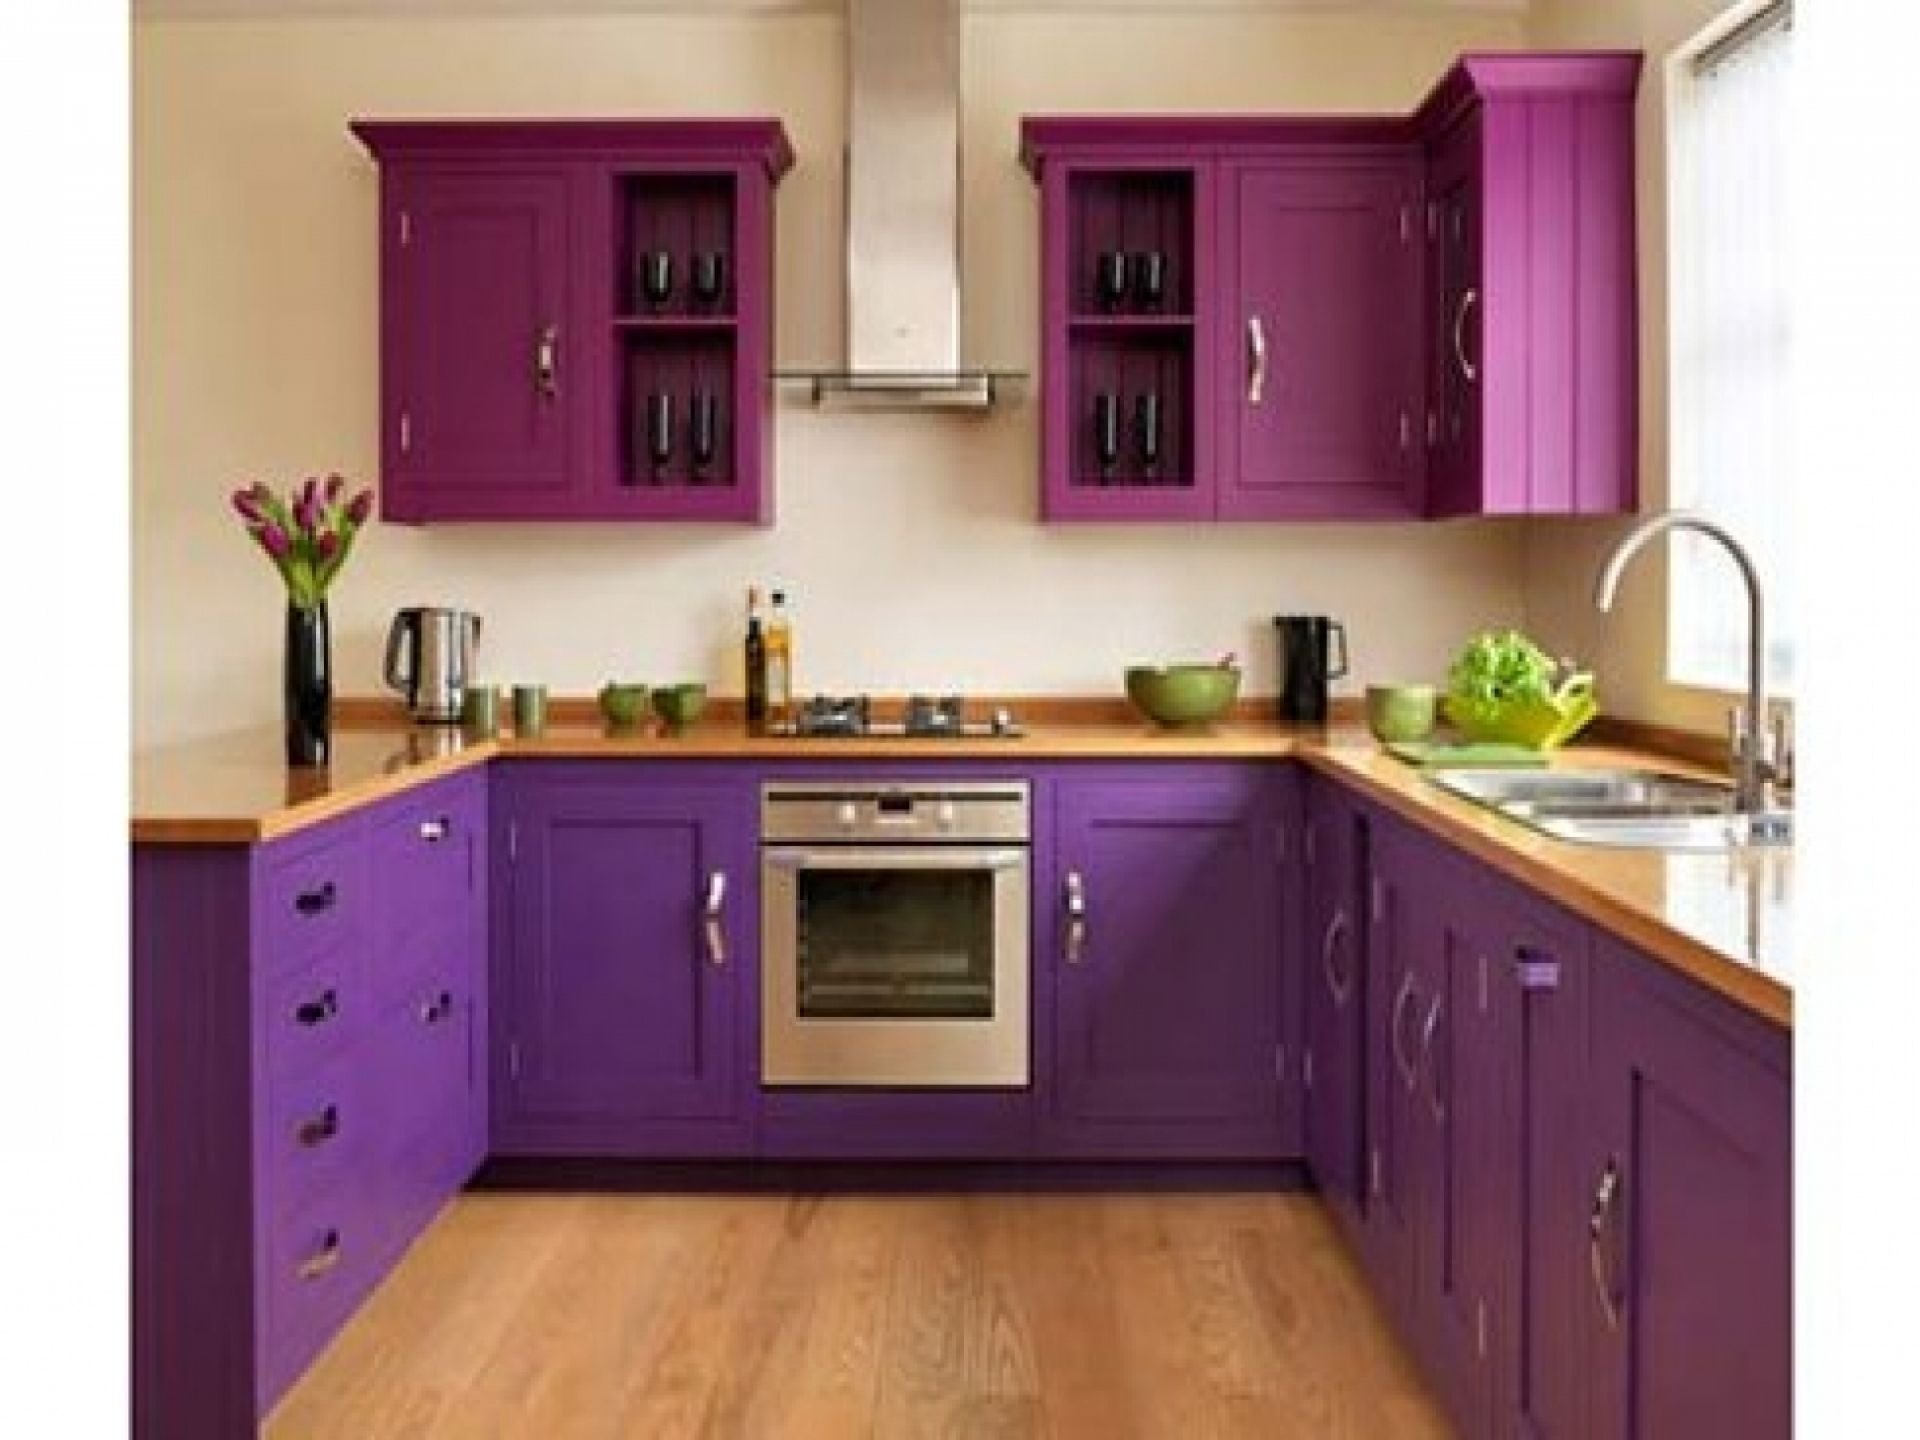 Kitchen Design Ideas In Purple Theme With Orchid Purple Wall Mounted ...